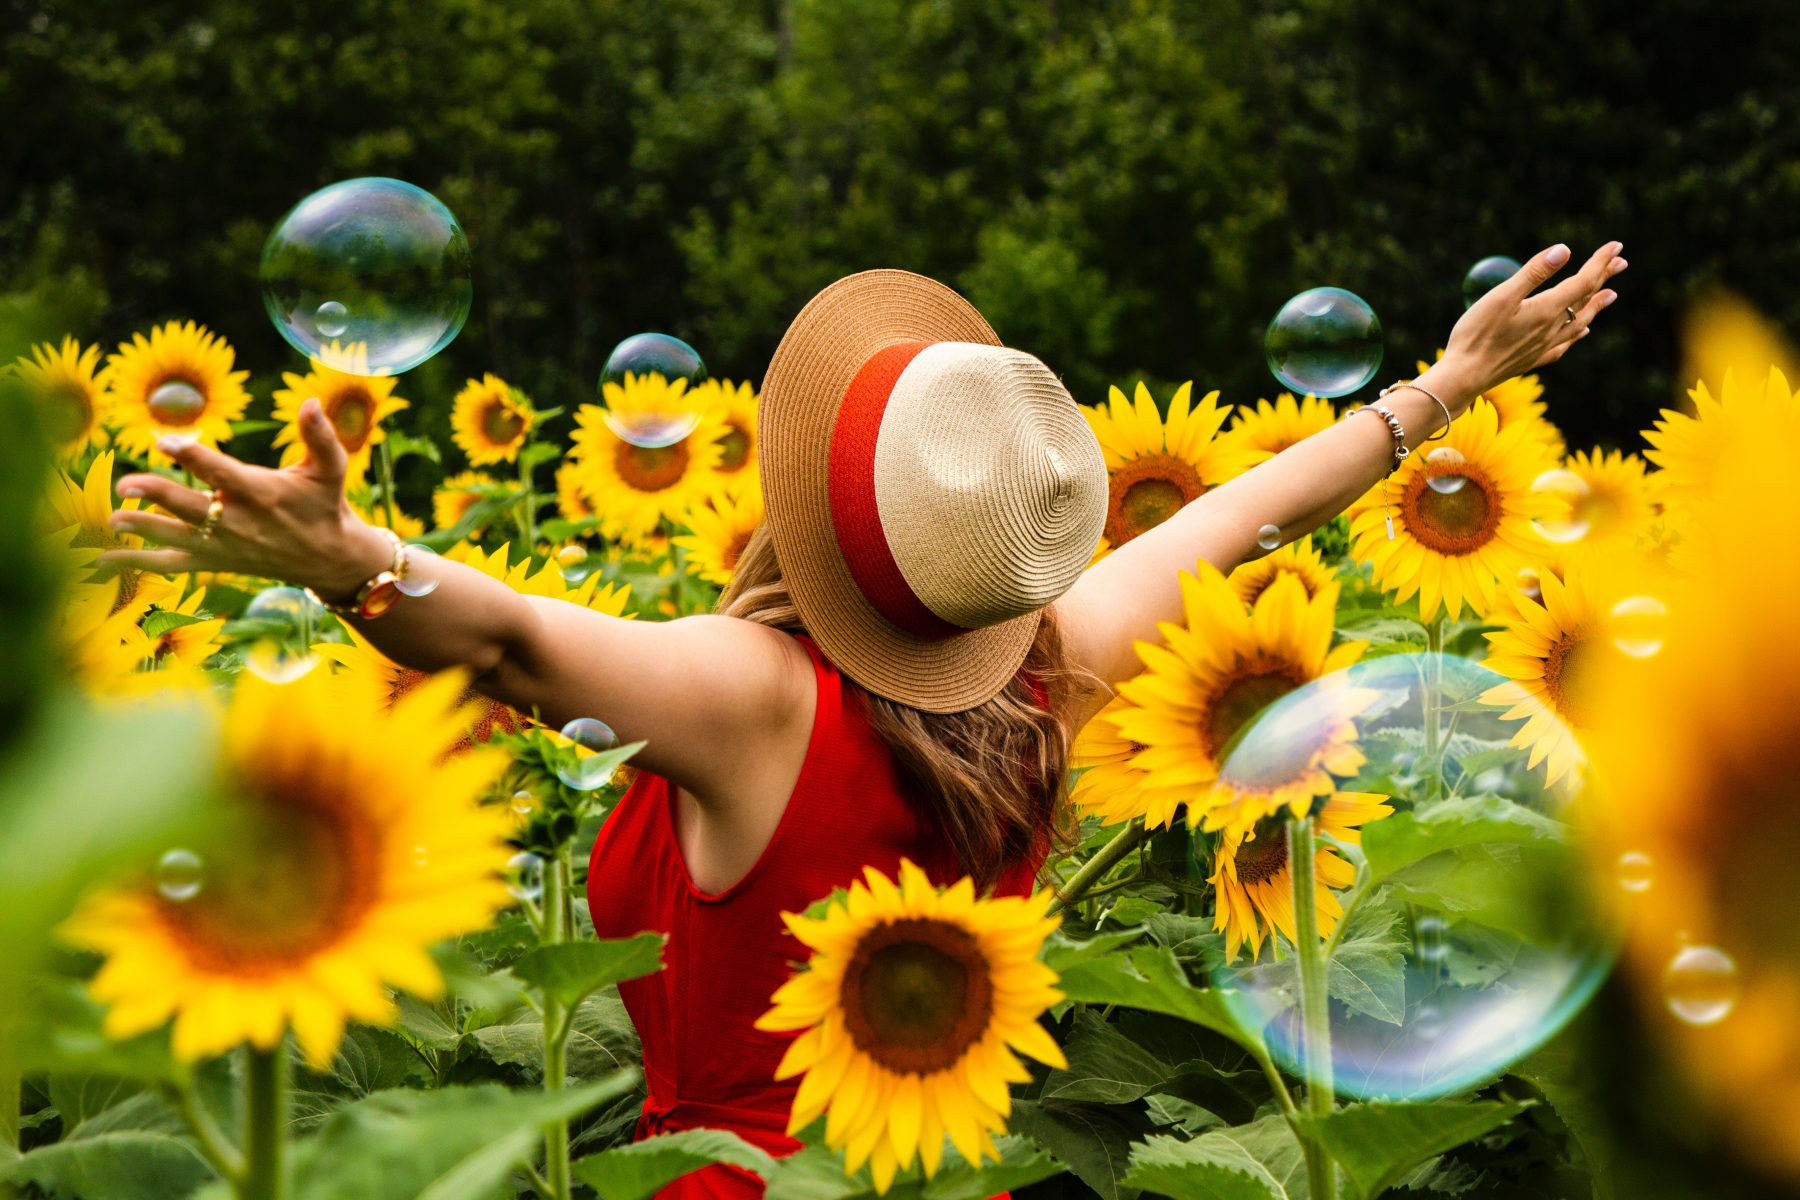 beautiful sunflowers and happy woman with her arms stretched out